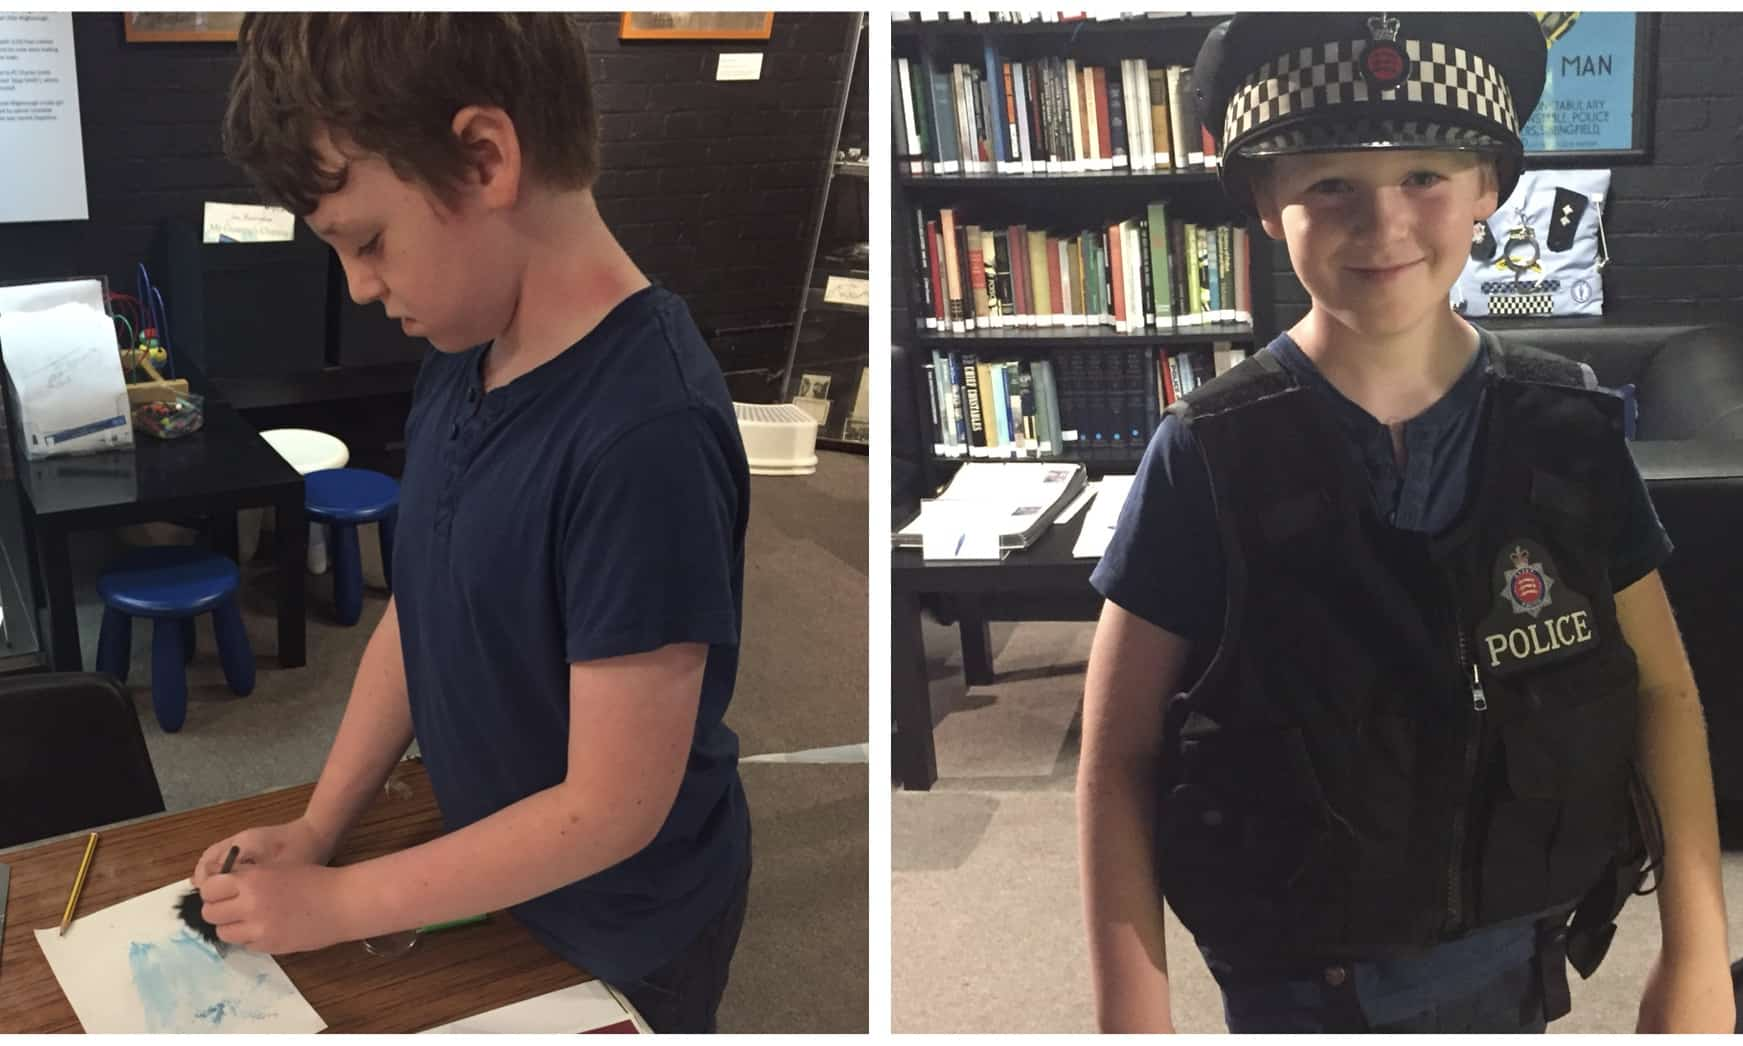 Visiting The Essex Police Museum